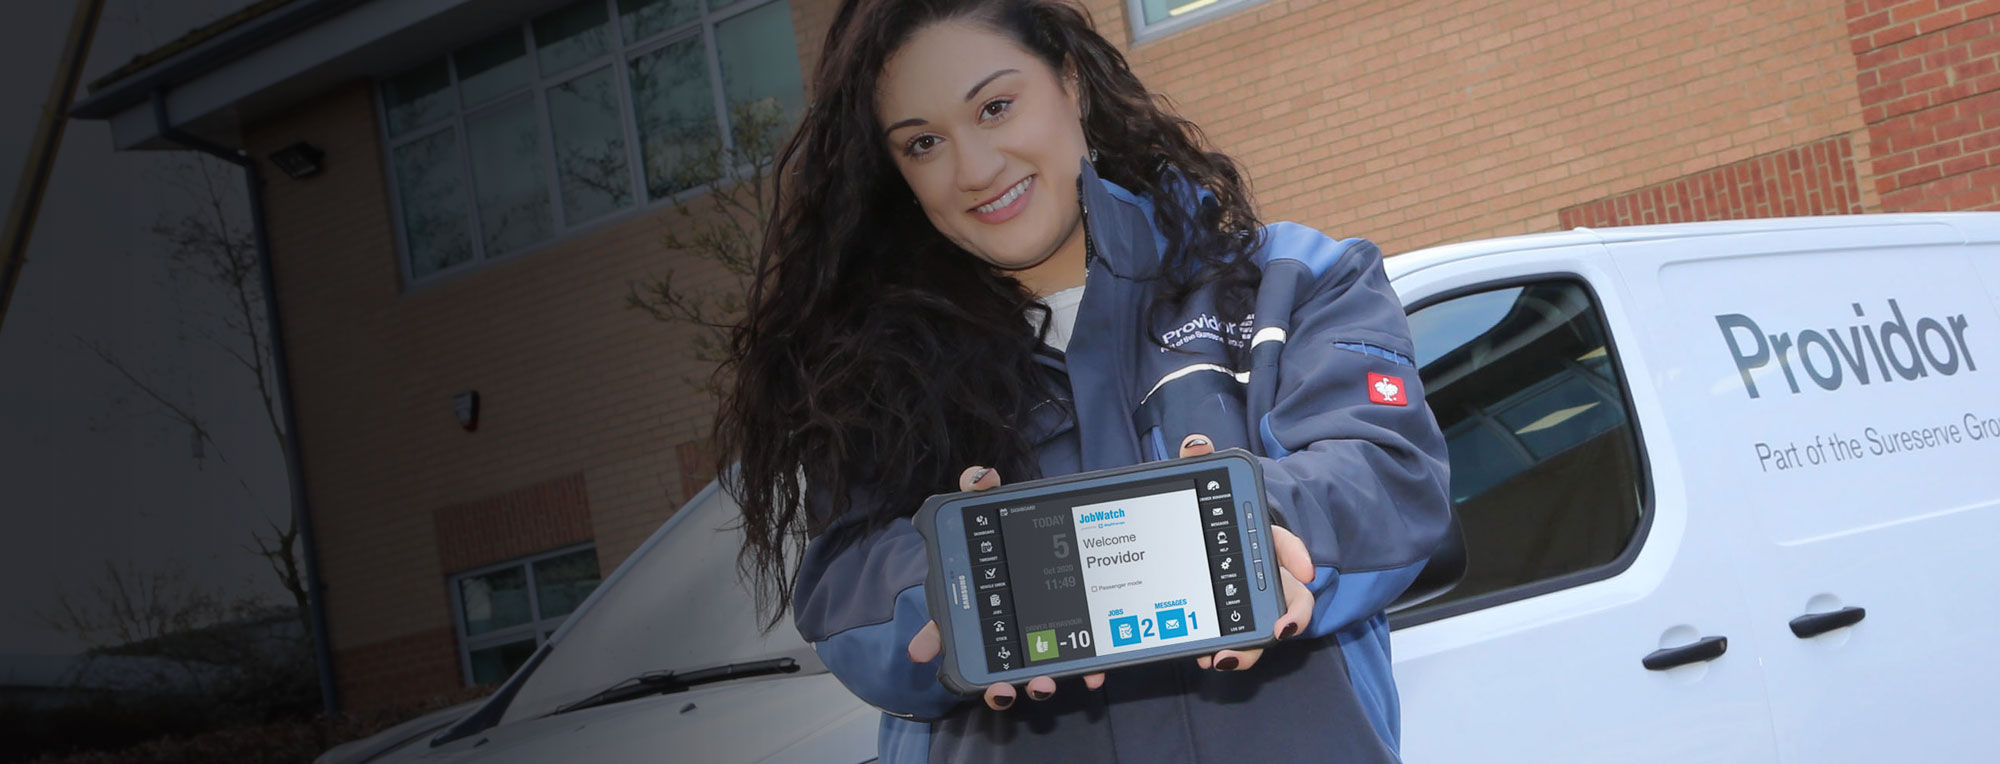 Provider employee using a JobWatch mobile device